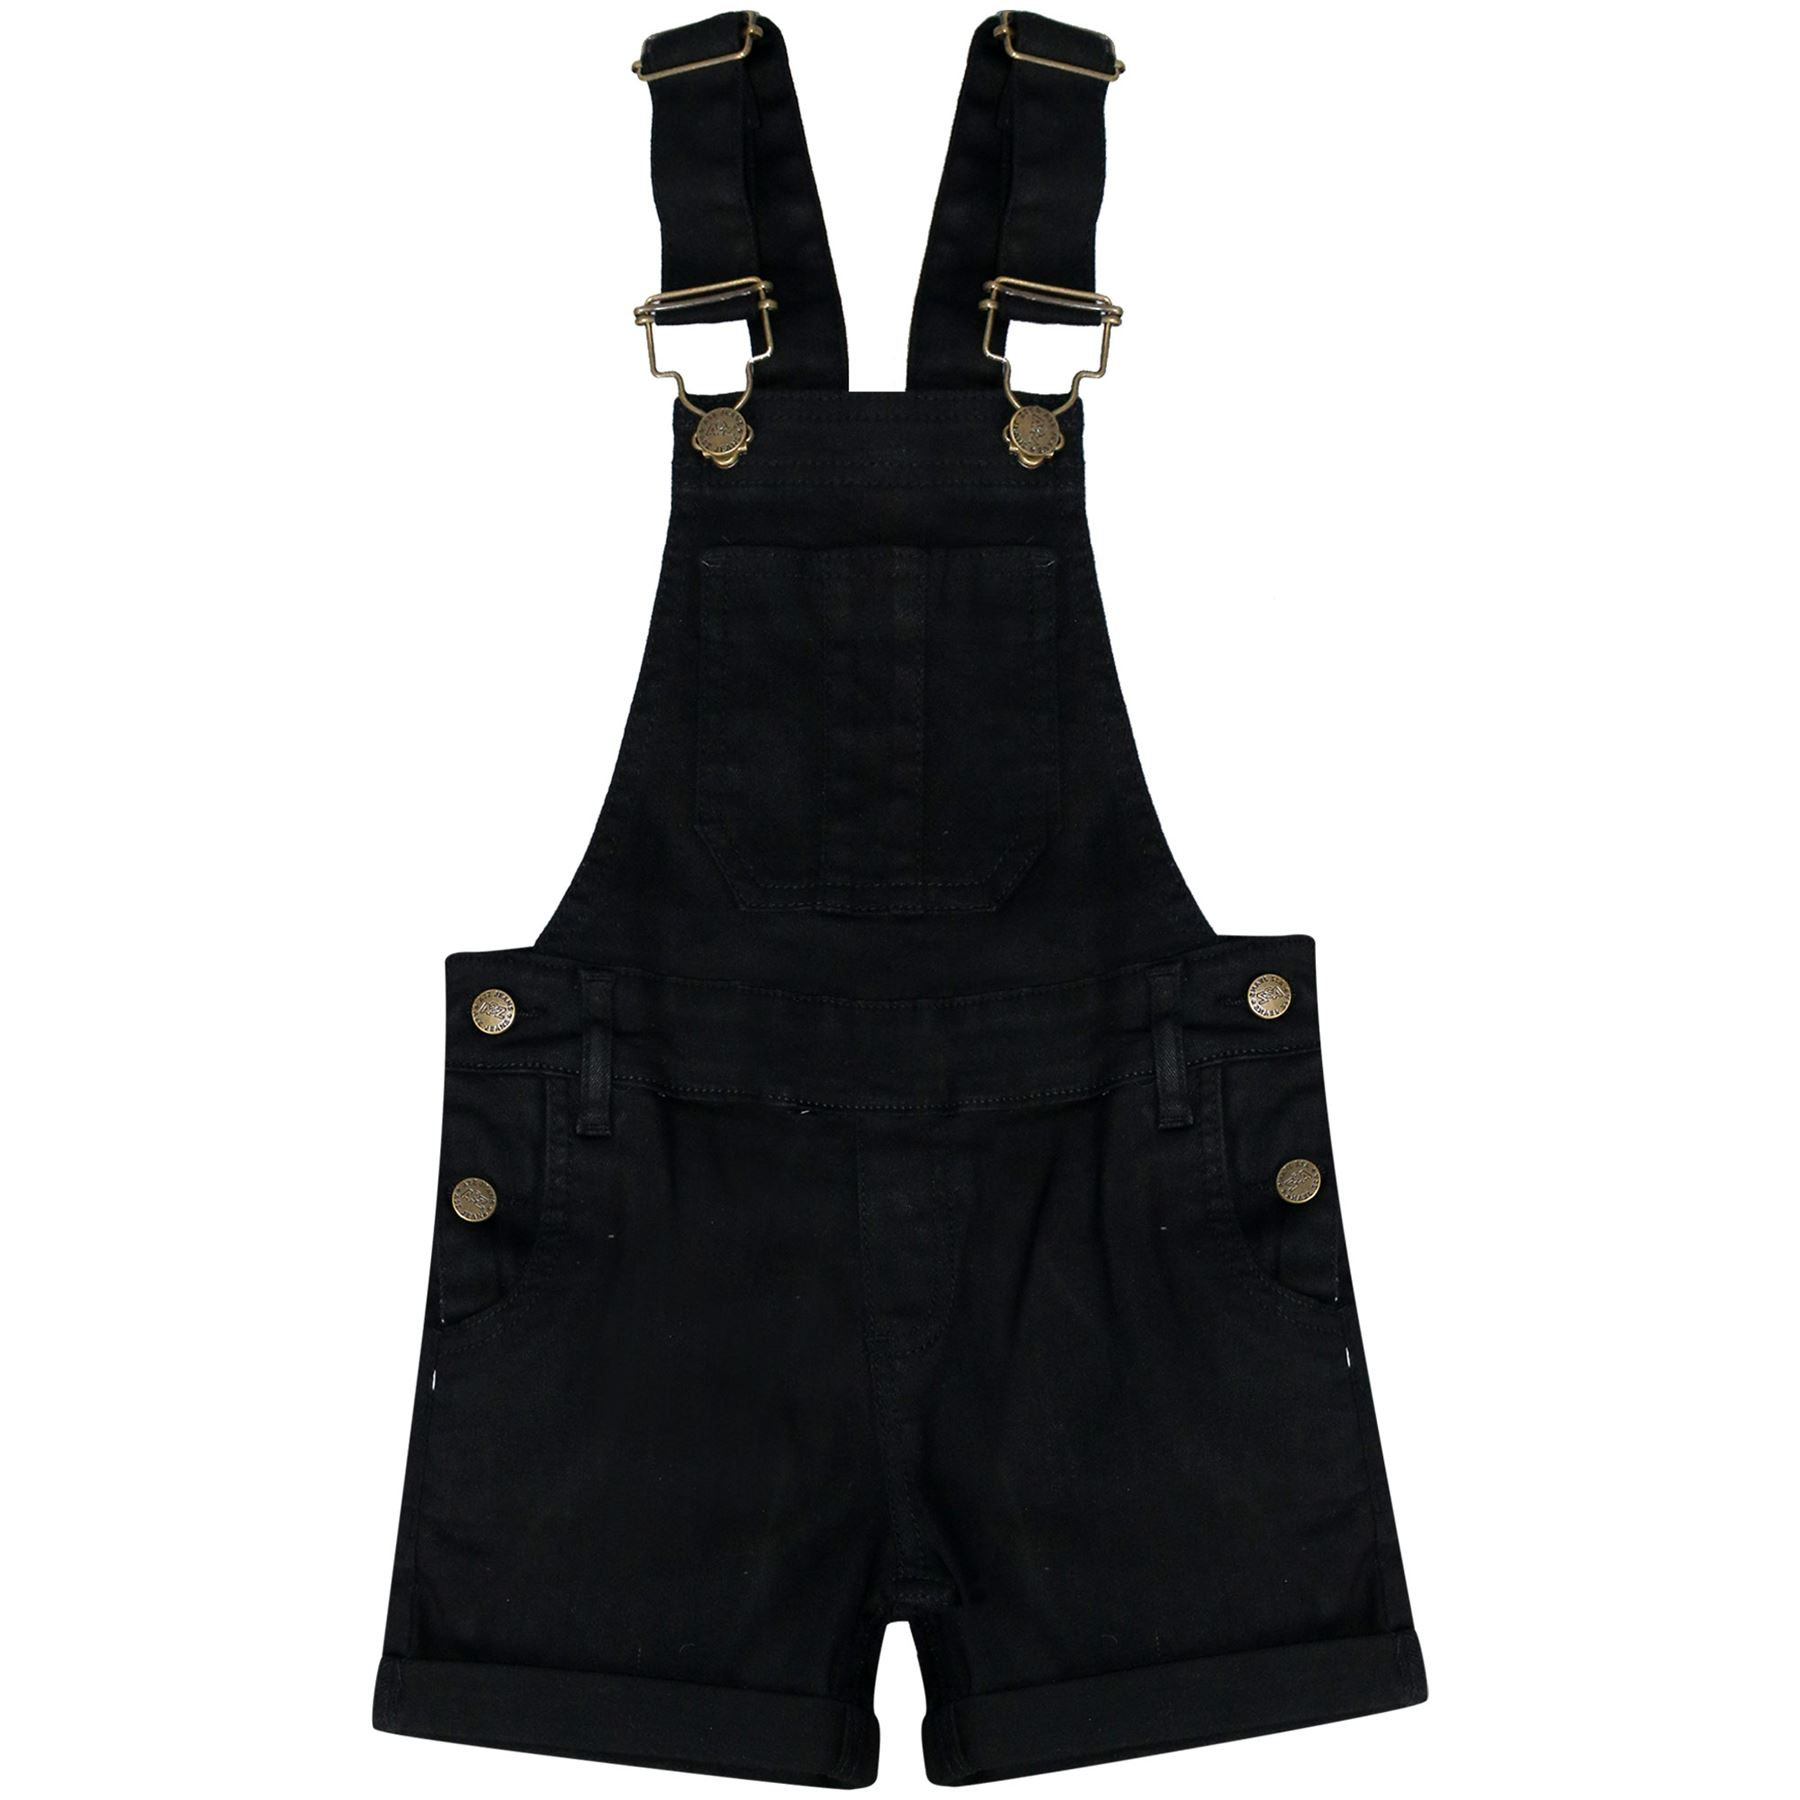 Age Up To 3 Months Adjustable Straps Next Boys Blue Dungarees